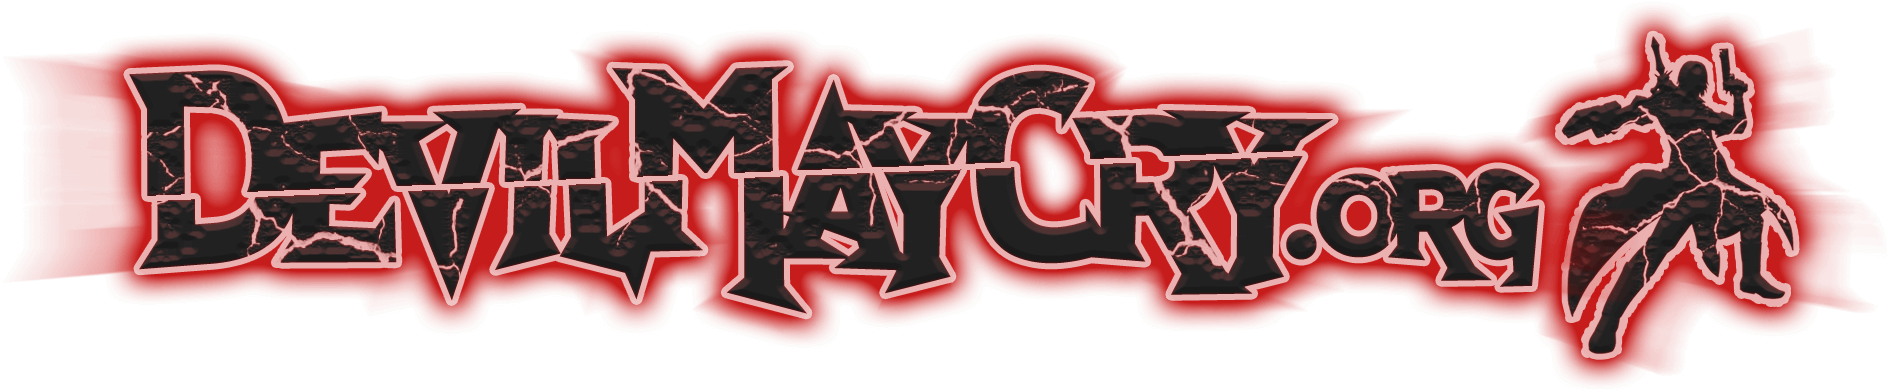 Devil May Cry 3 Logo Transparent & PNG Clipart Free Download - YA